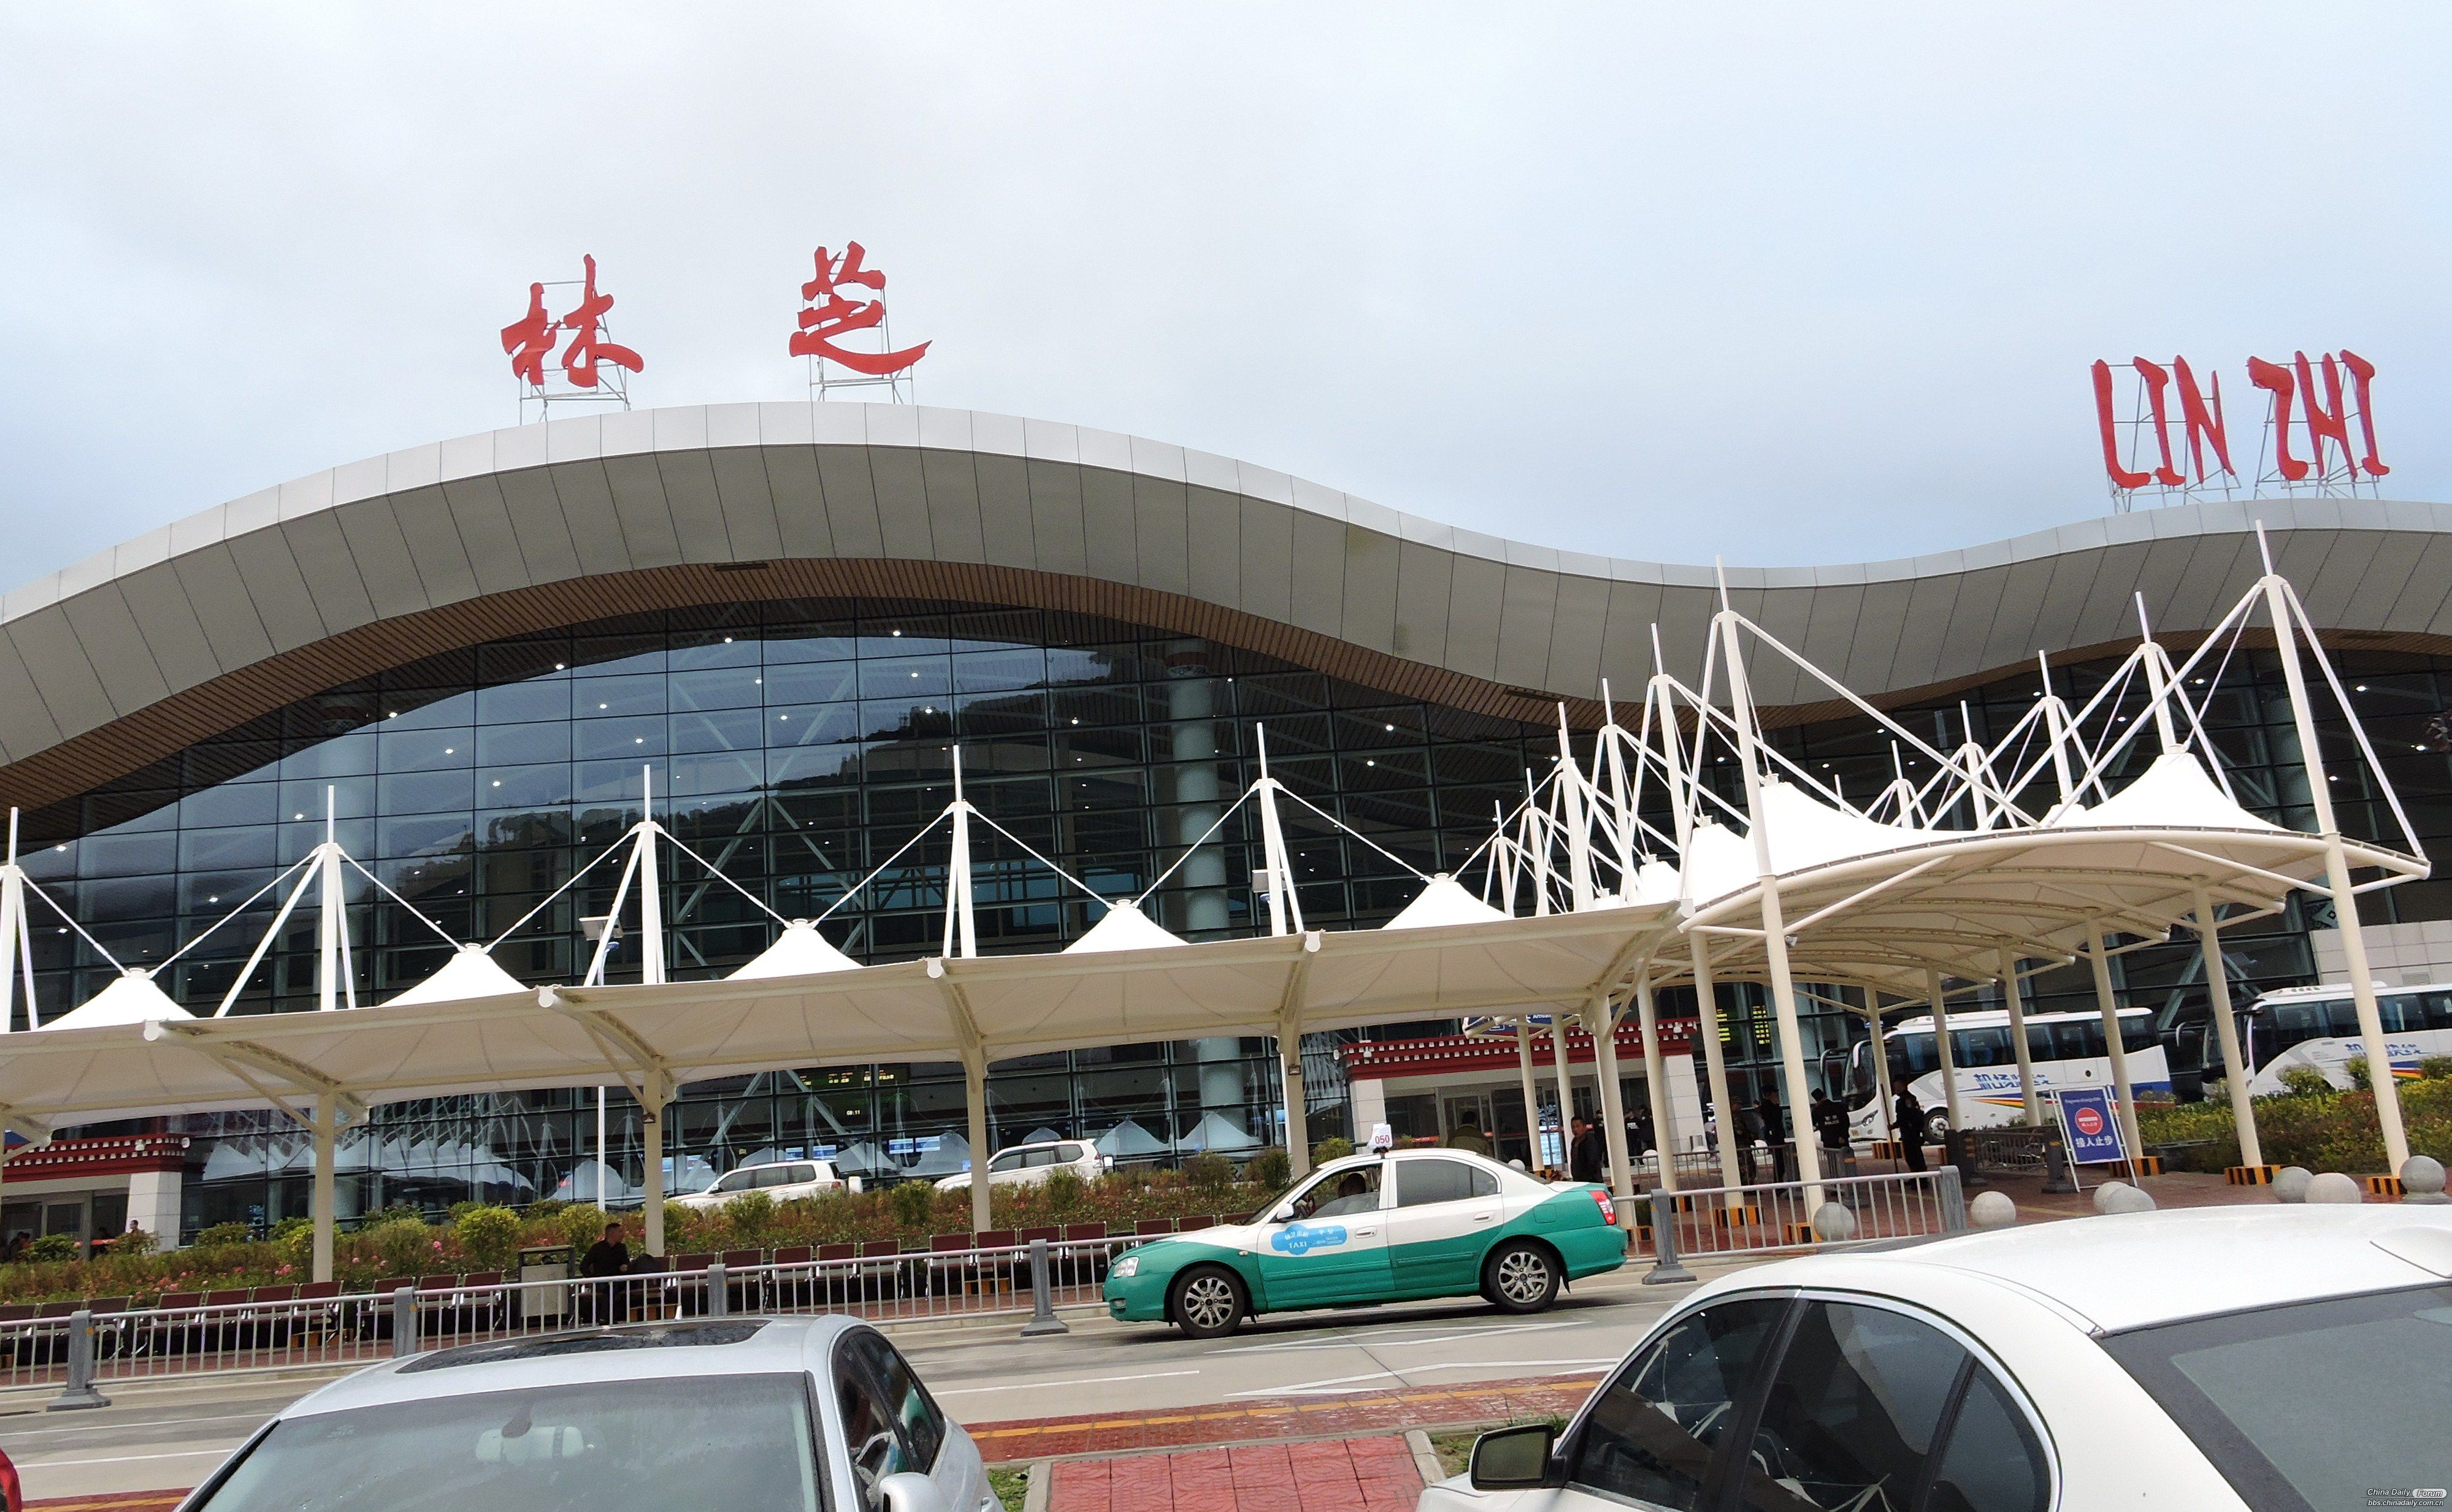 Linzhi or Nyingchi airport